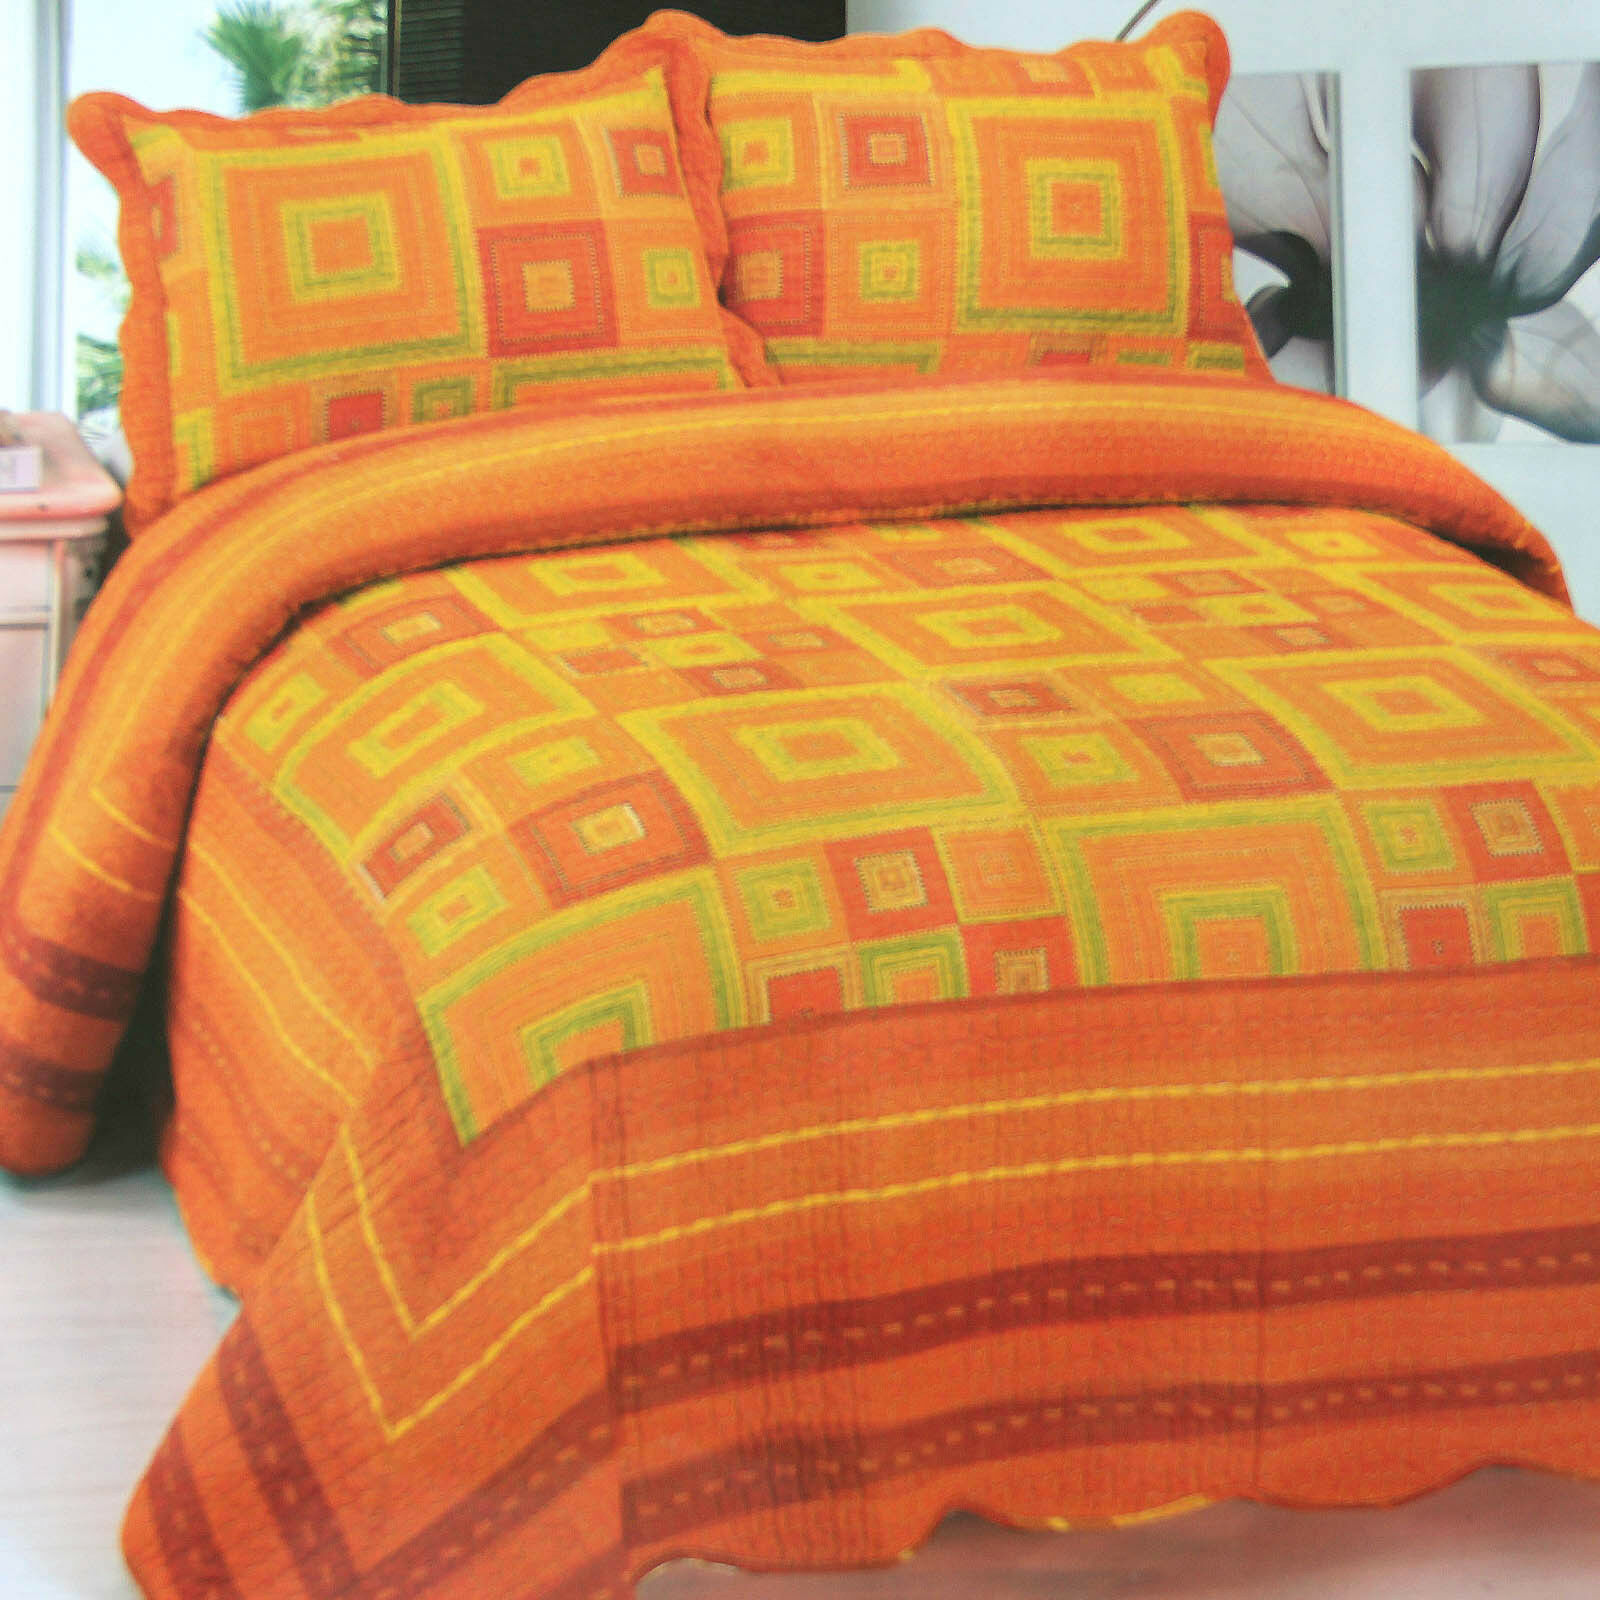 Cotton Quilted Bedspread 3PCS Set in Rich Orange Farbe Tones Queen Größe